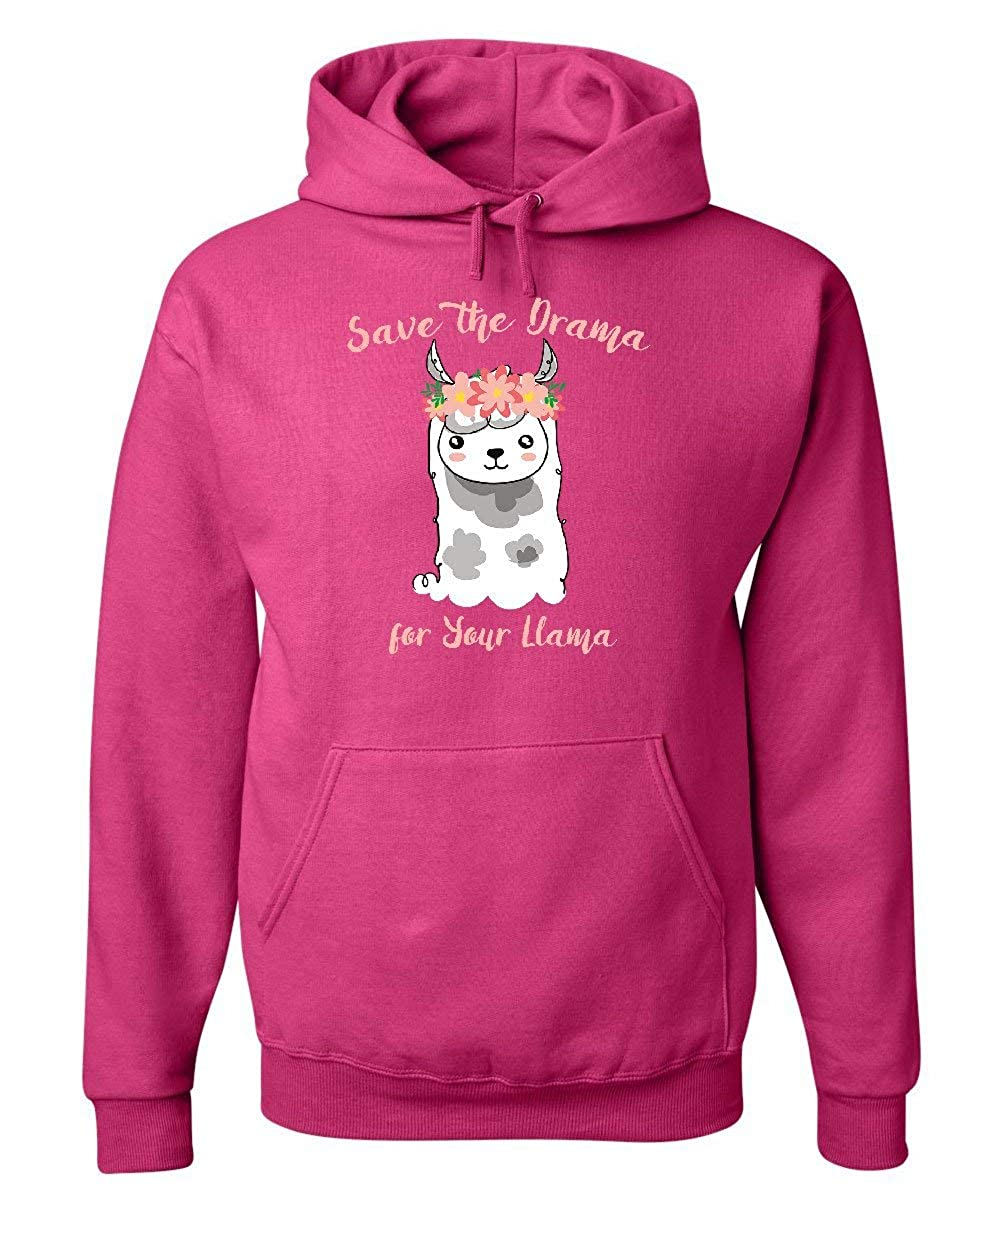 Tee Hunt Save The Drama for Your Llama Hoodie Funny Cute Adorable Fluffy Sweatshirt